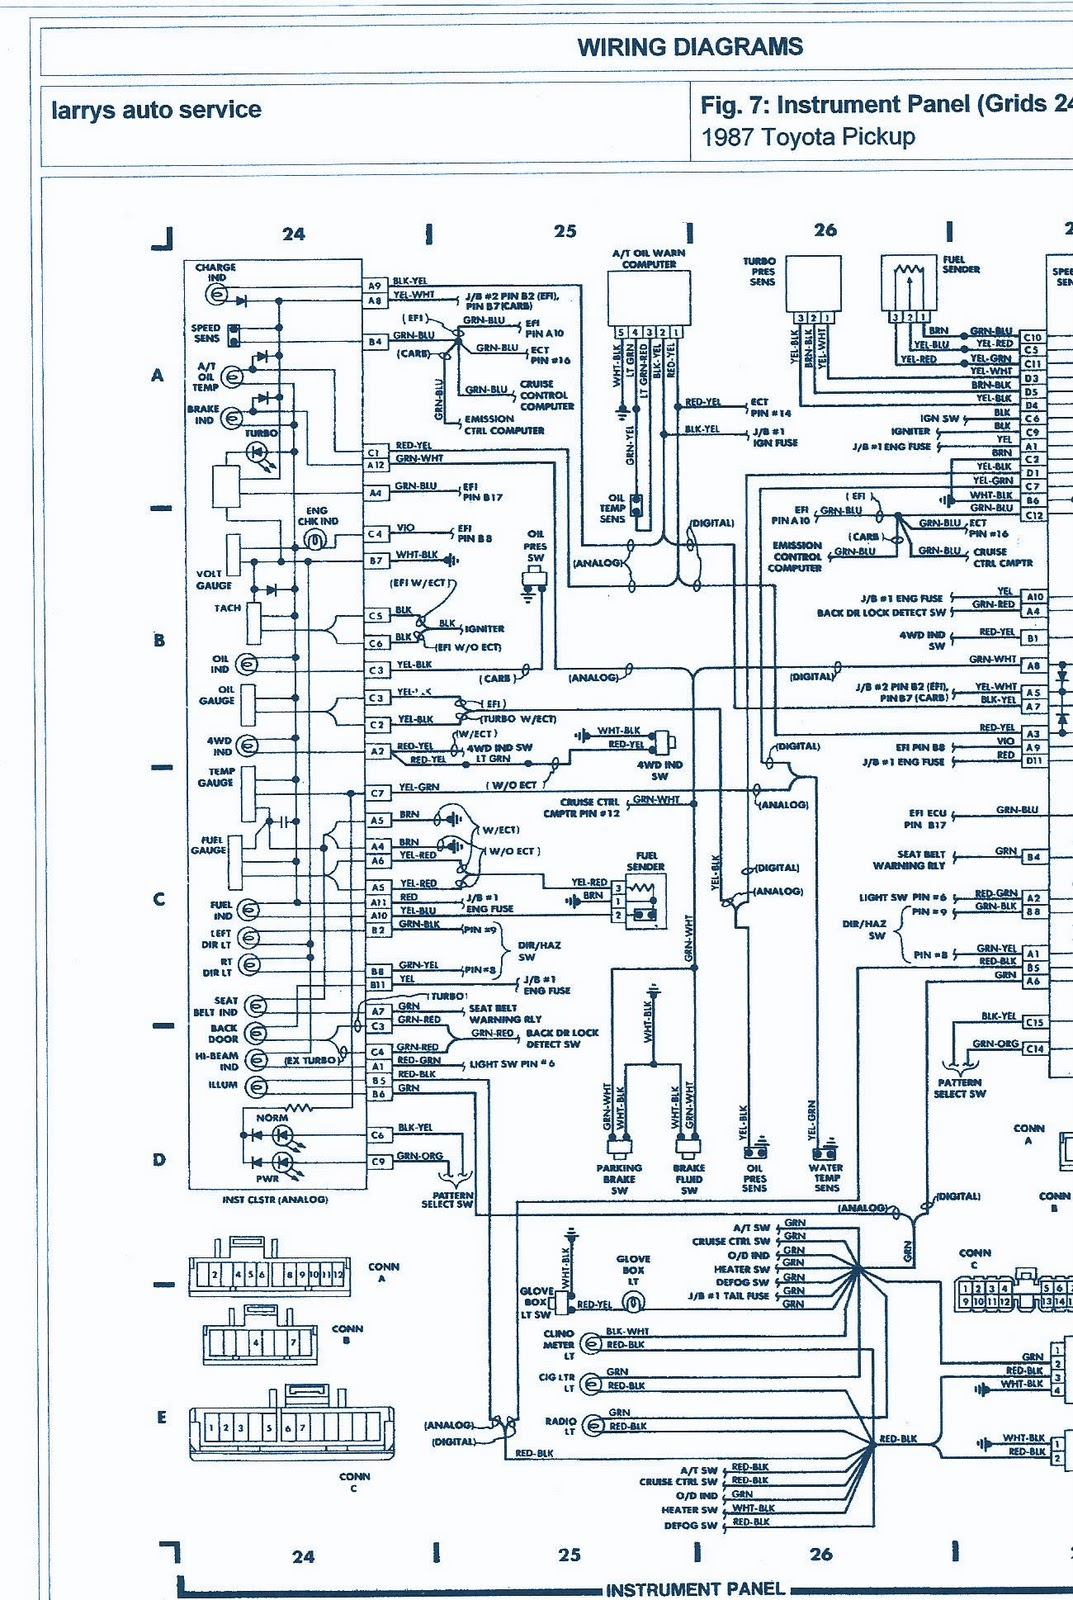 Toyota Pickup Wd R Engine Wiring Diagram